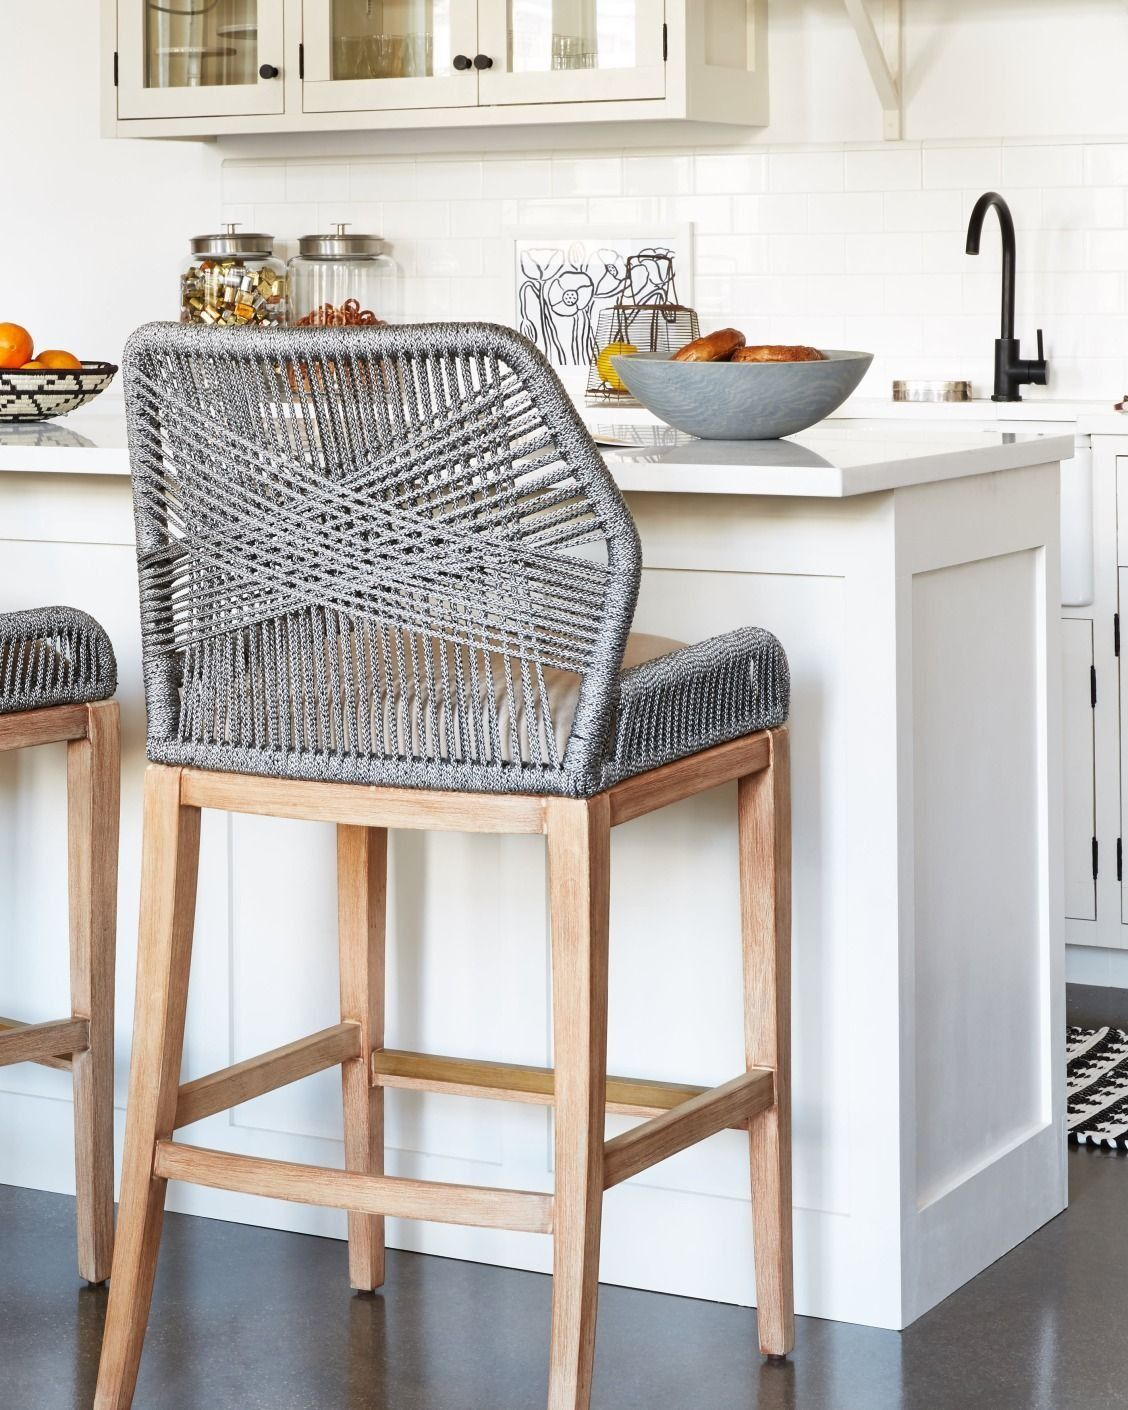 Rustic Stools Kitchens These Woven Rope Counter Stools Are Such A Fun Unexpected